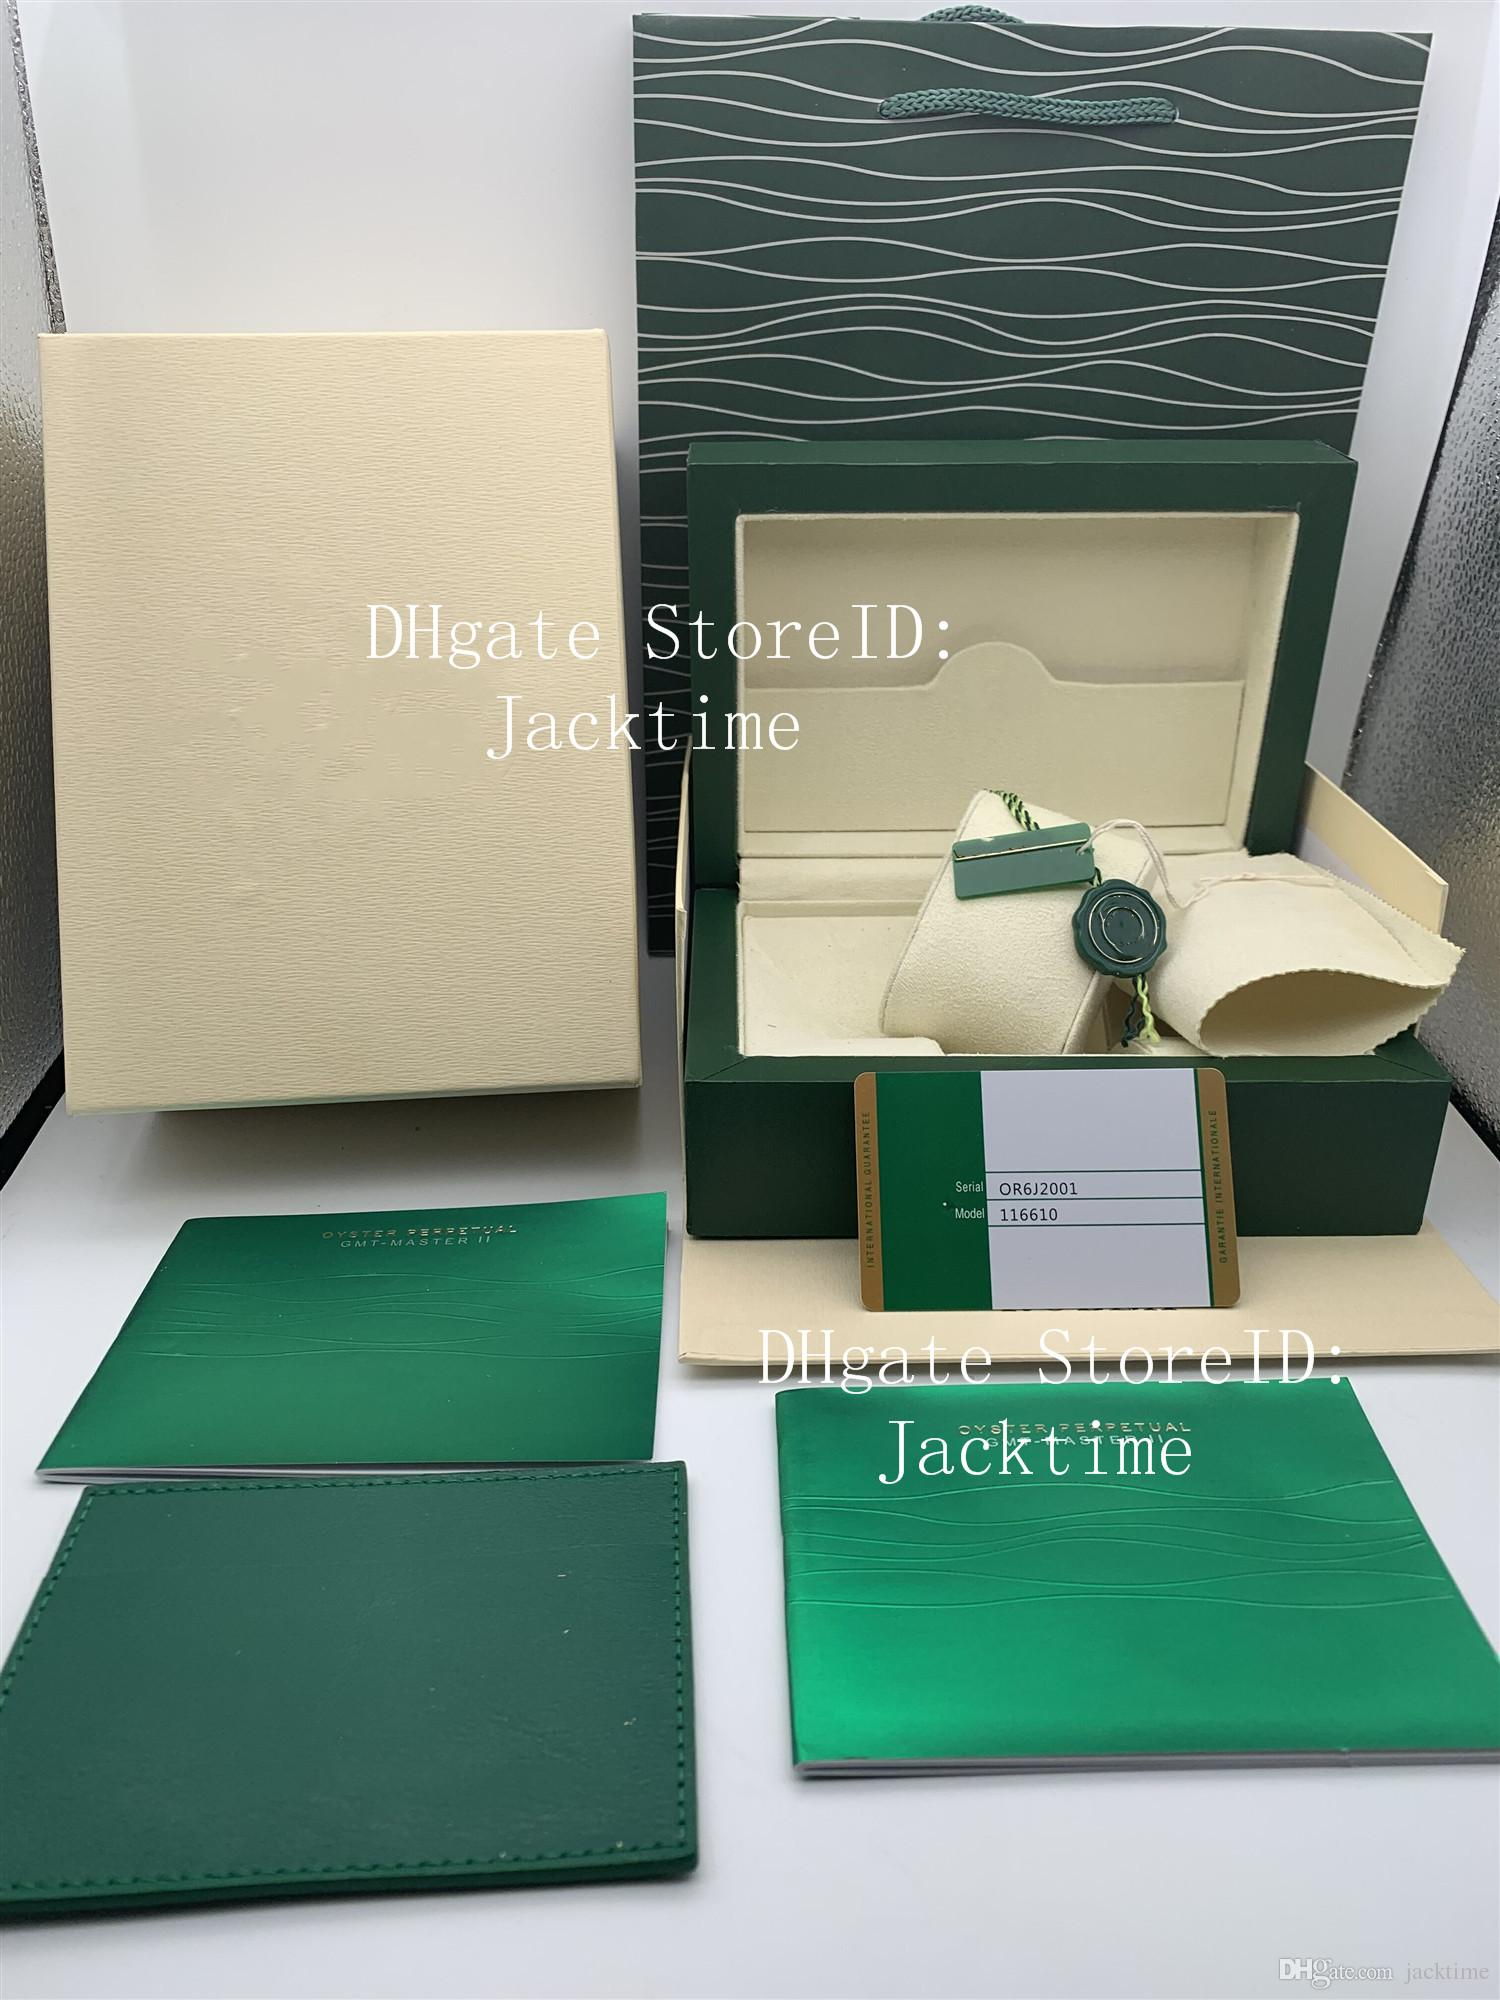 Factory Supplier High Quality Green Box Papers Gift Watches Boxes Leather Bag Card For 116610 116660 116710 116613 Watch Boxes Handbags